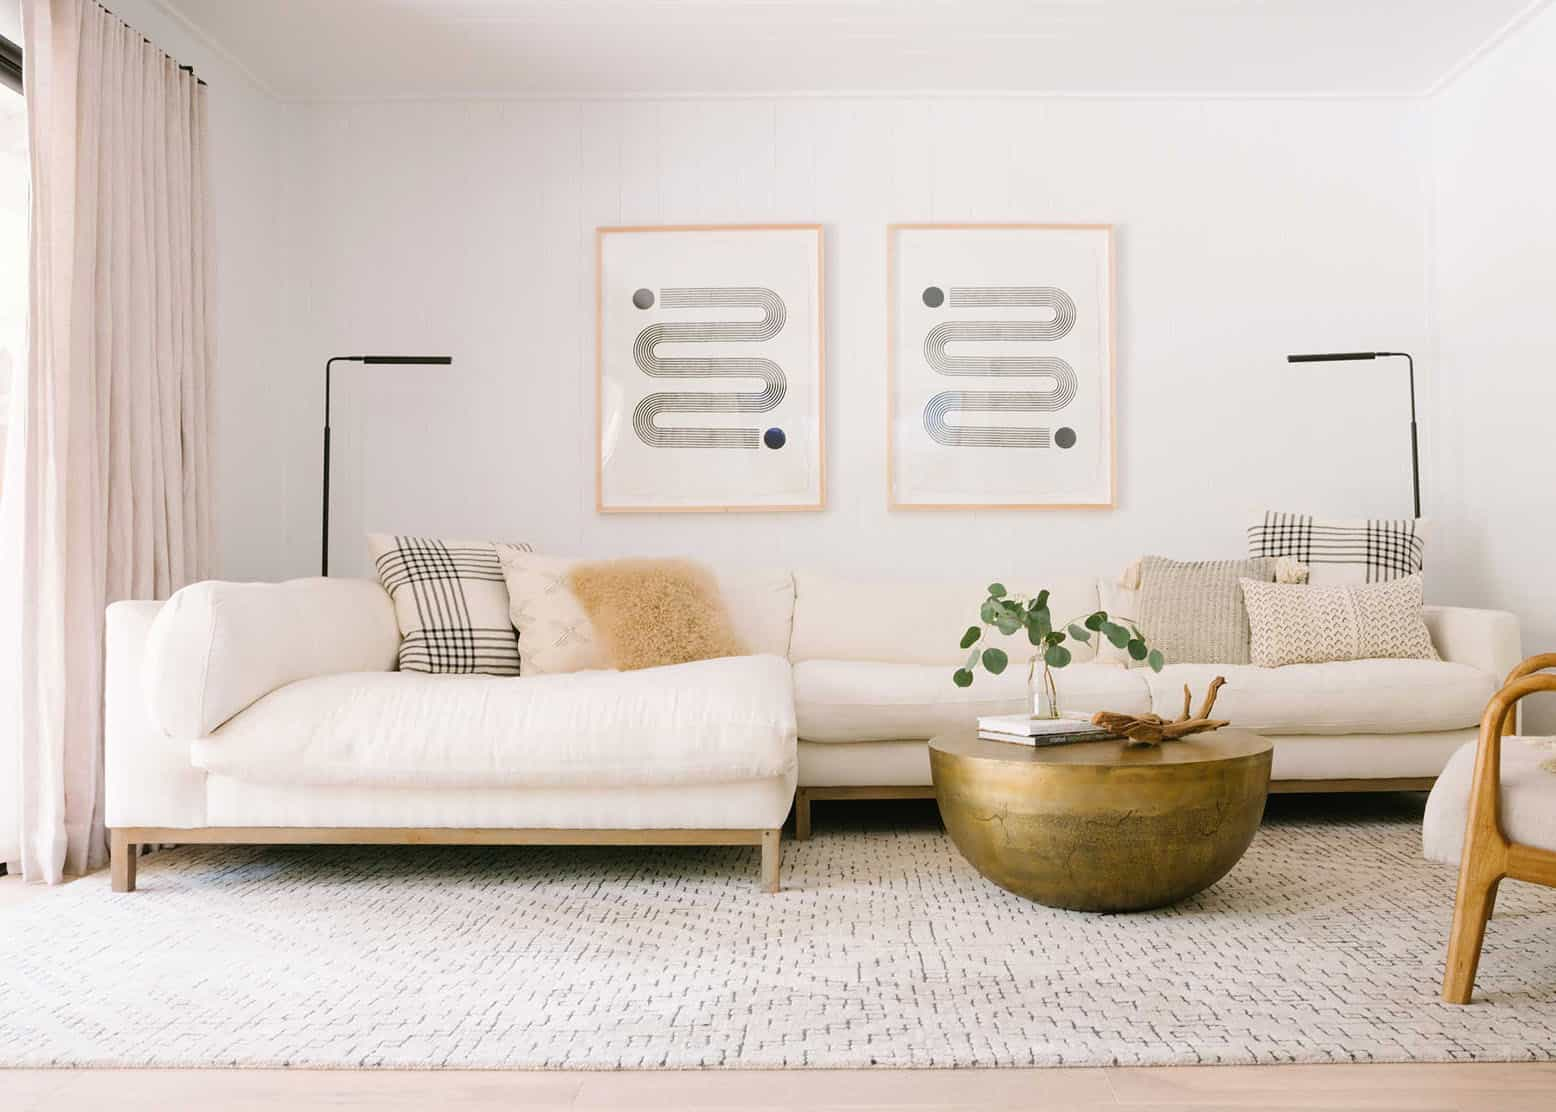 How To Choose The Right Rug Size For Your Living Room - 4 Formulas